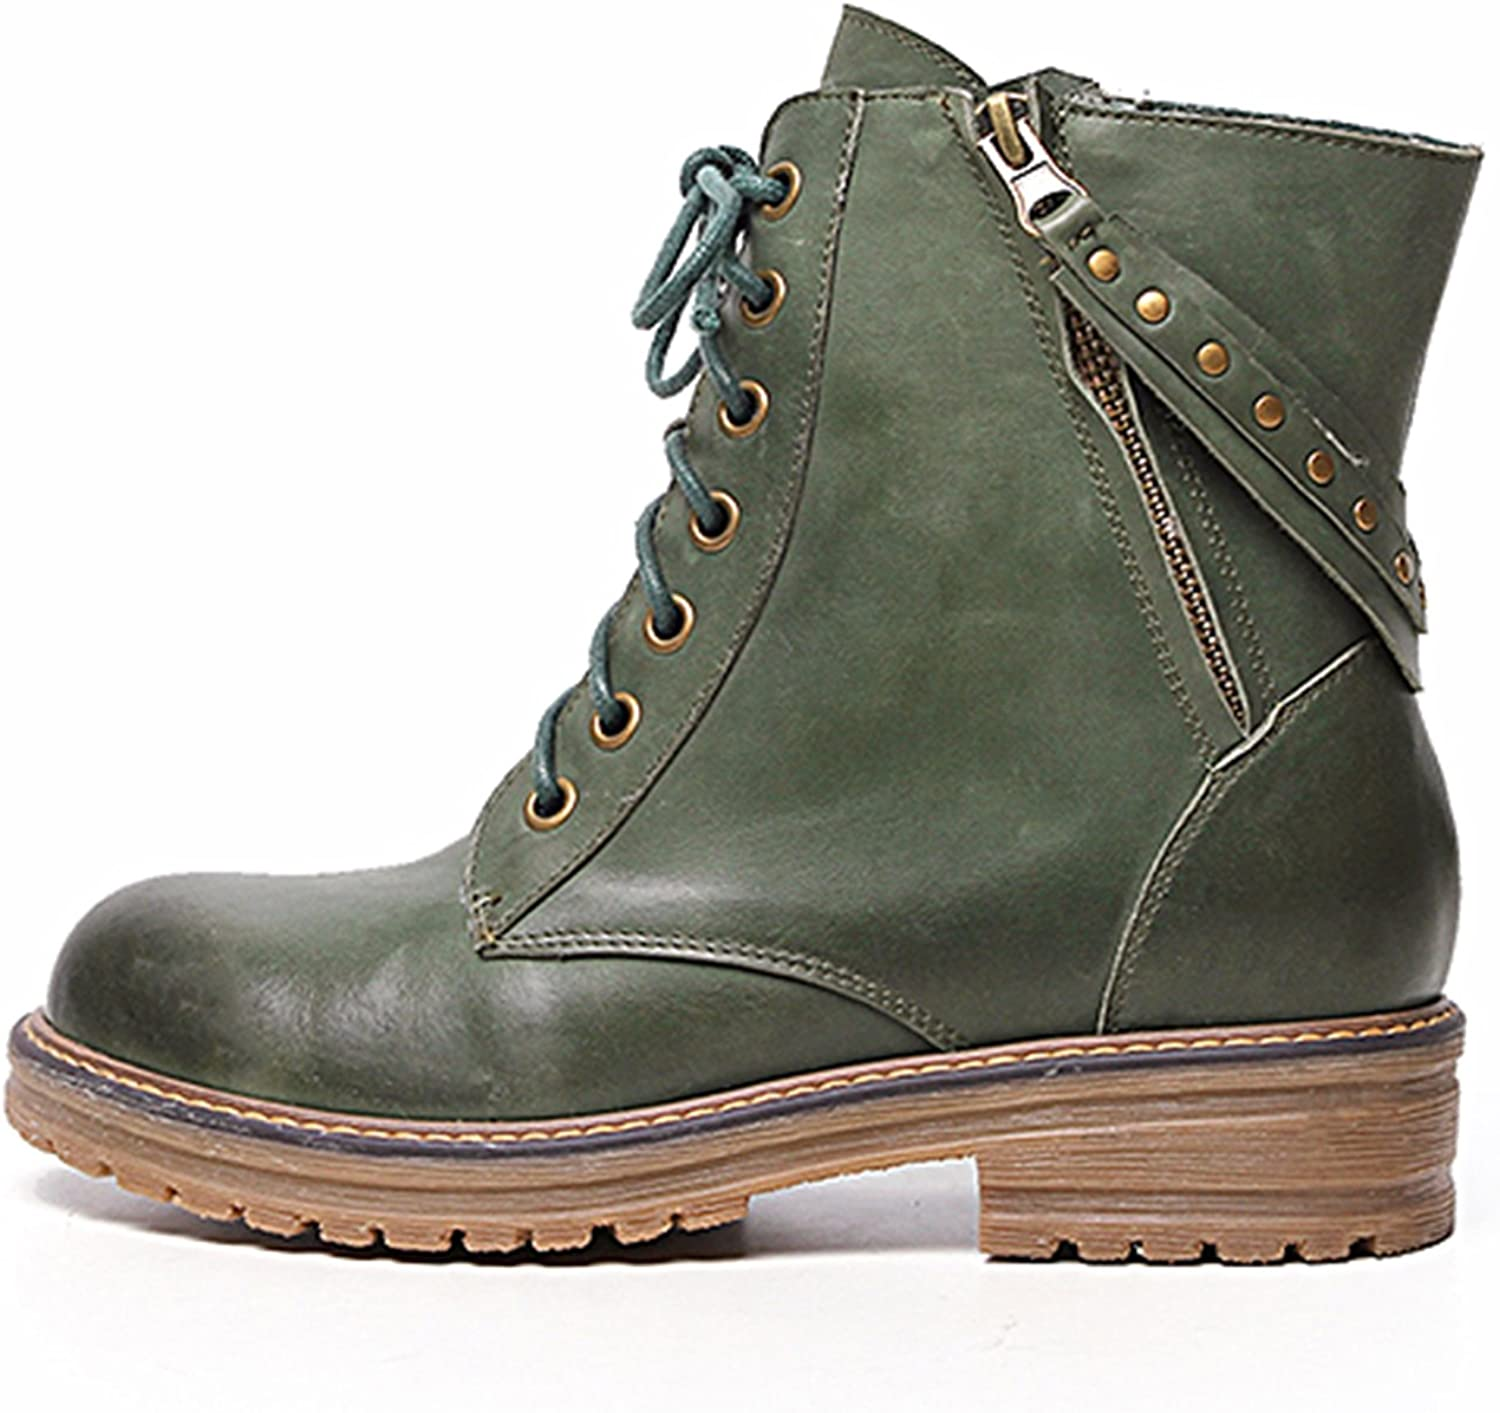 MINIVOG Stacked Heel Treaded-Sole Womens Military Boots Distressed with Straps